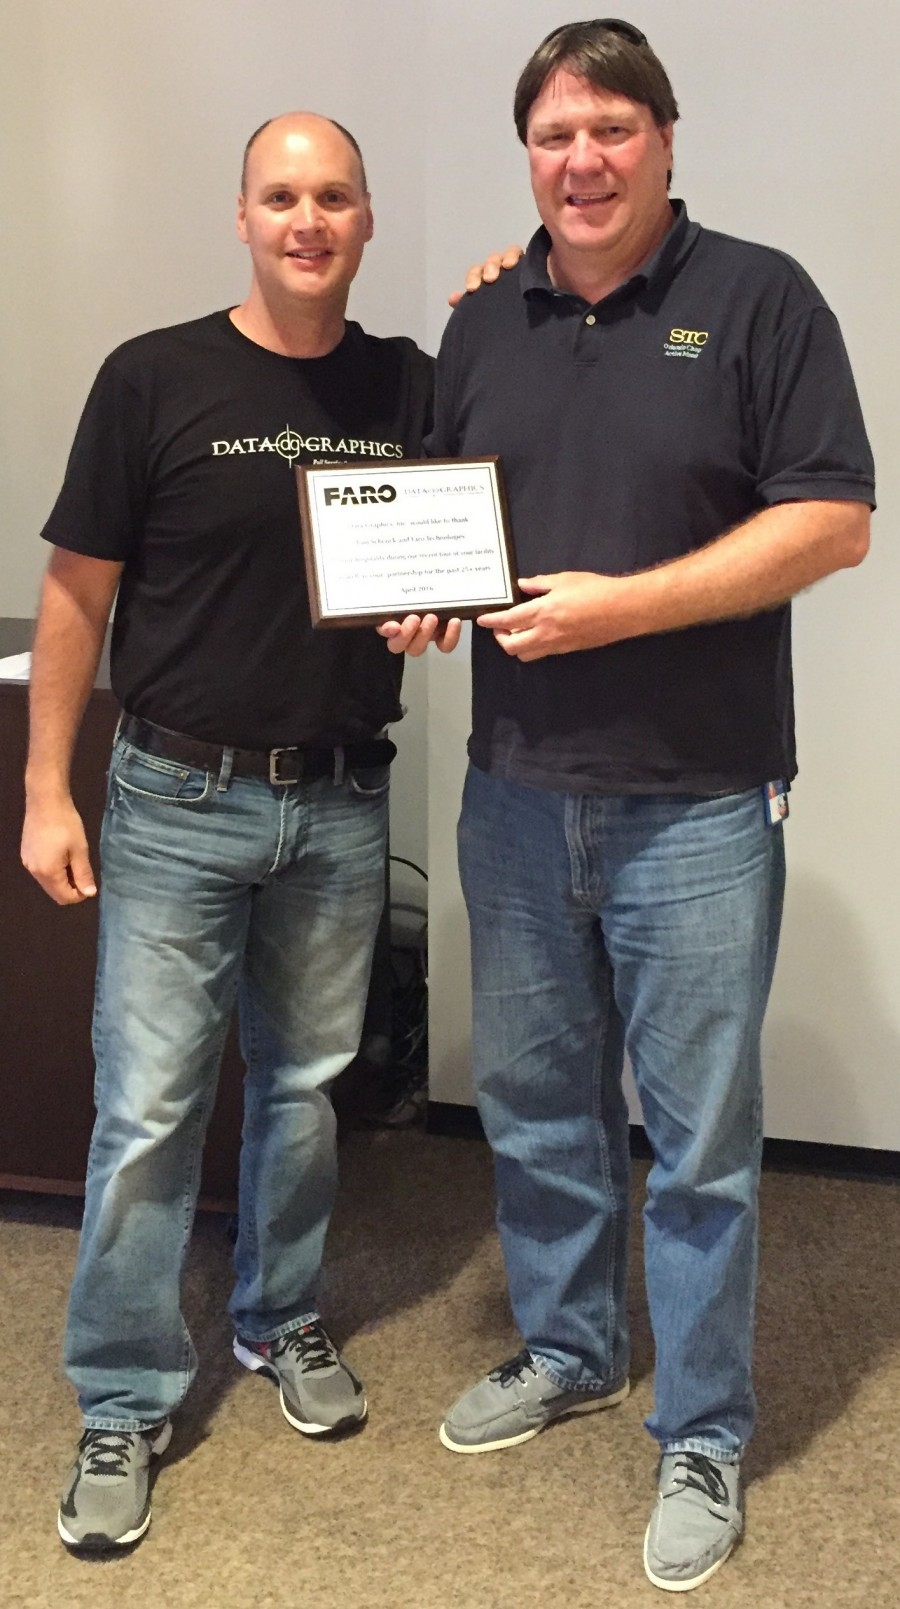 CEO Brad Presenting a plaque honoring our host with the most, Tom. Thanks again for everything, Tom and the Faro Team.